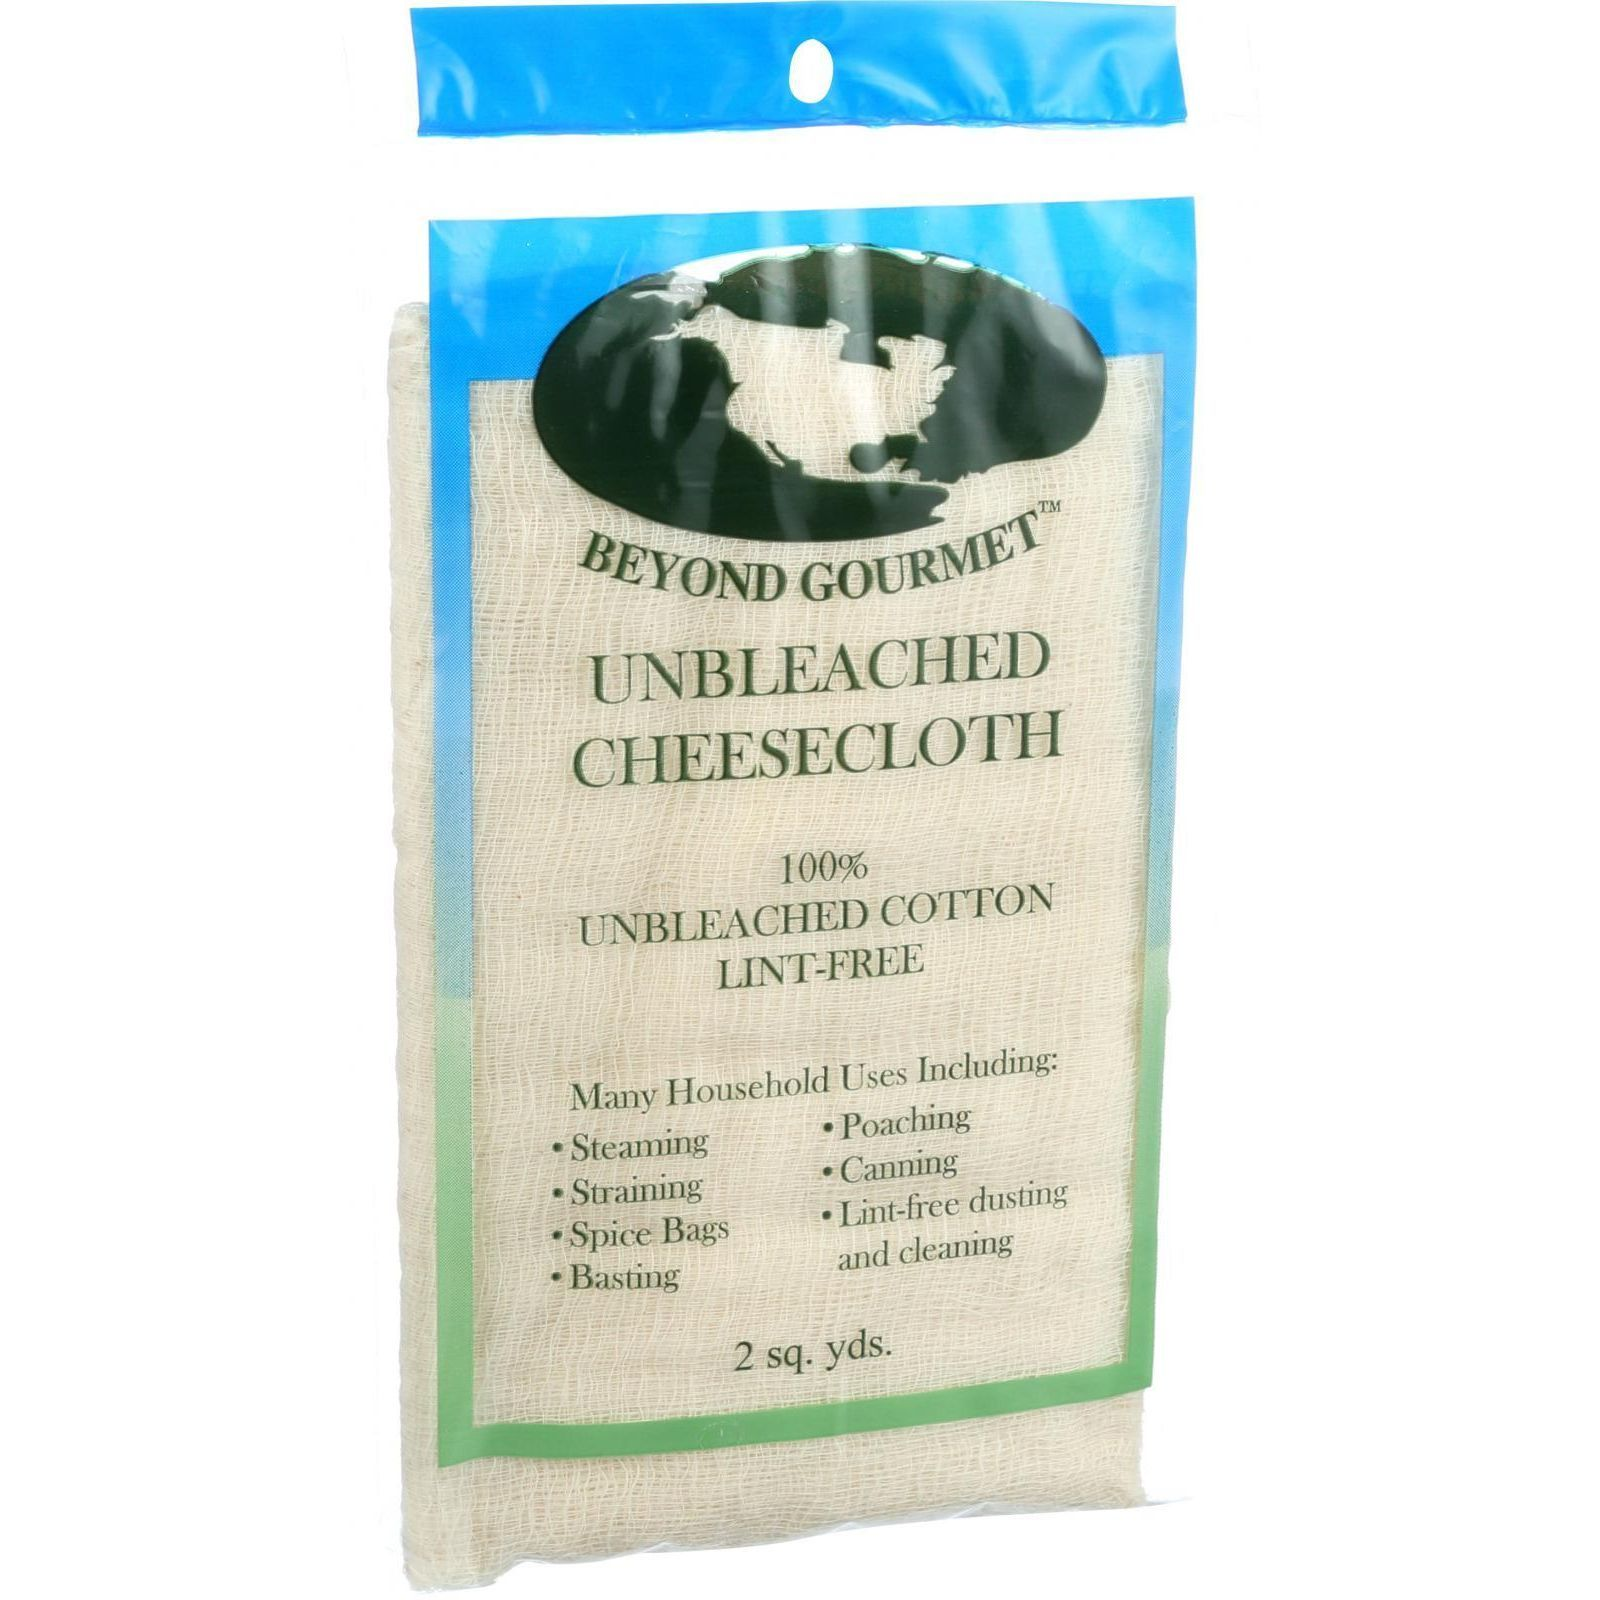 Beyond Gourmet Cheesecloth - Unbleached - 2 sq yd